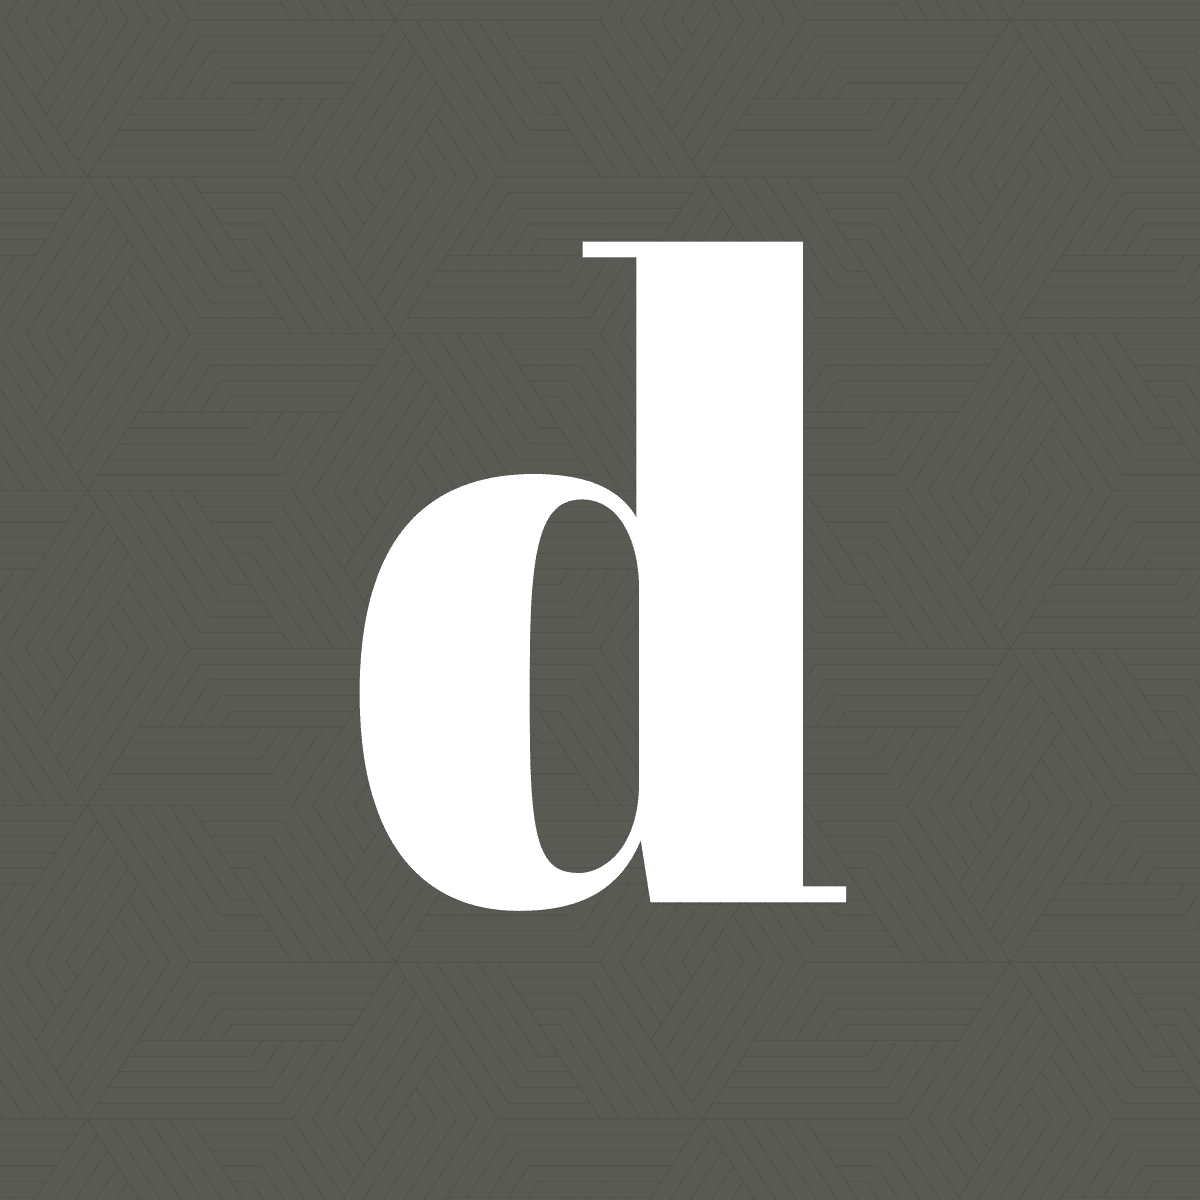 D is for Decorum | Brand marketing for interiors